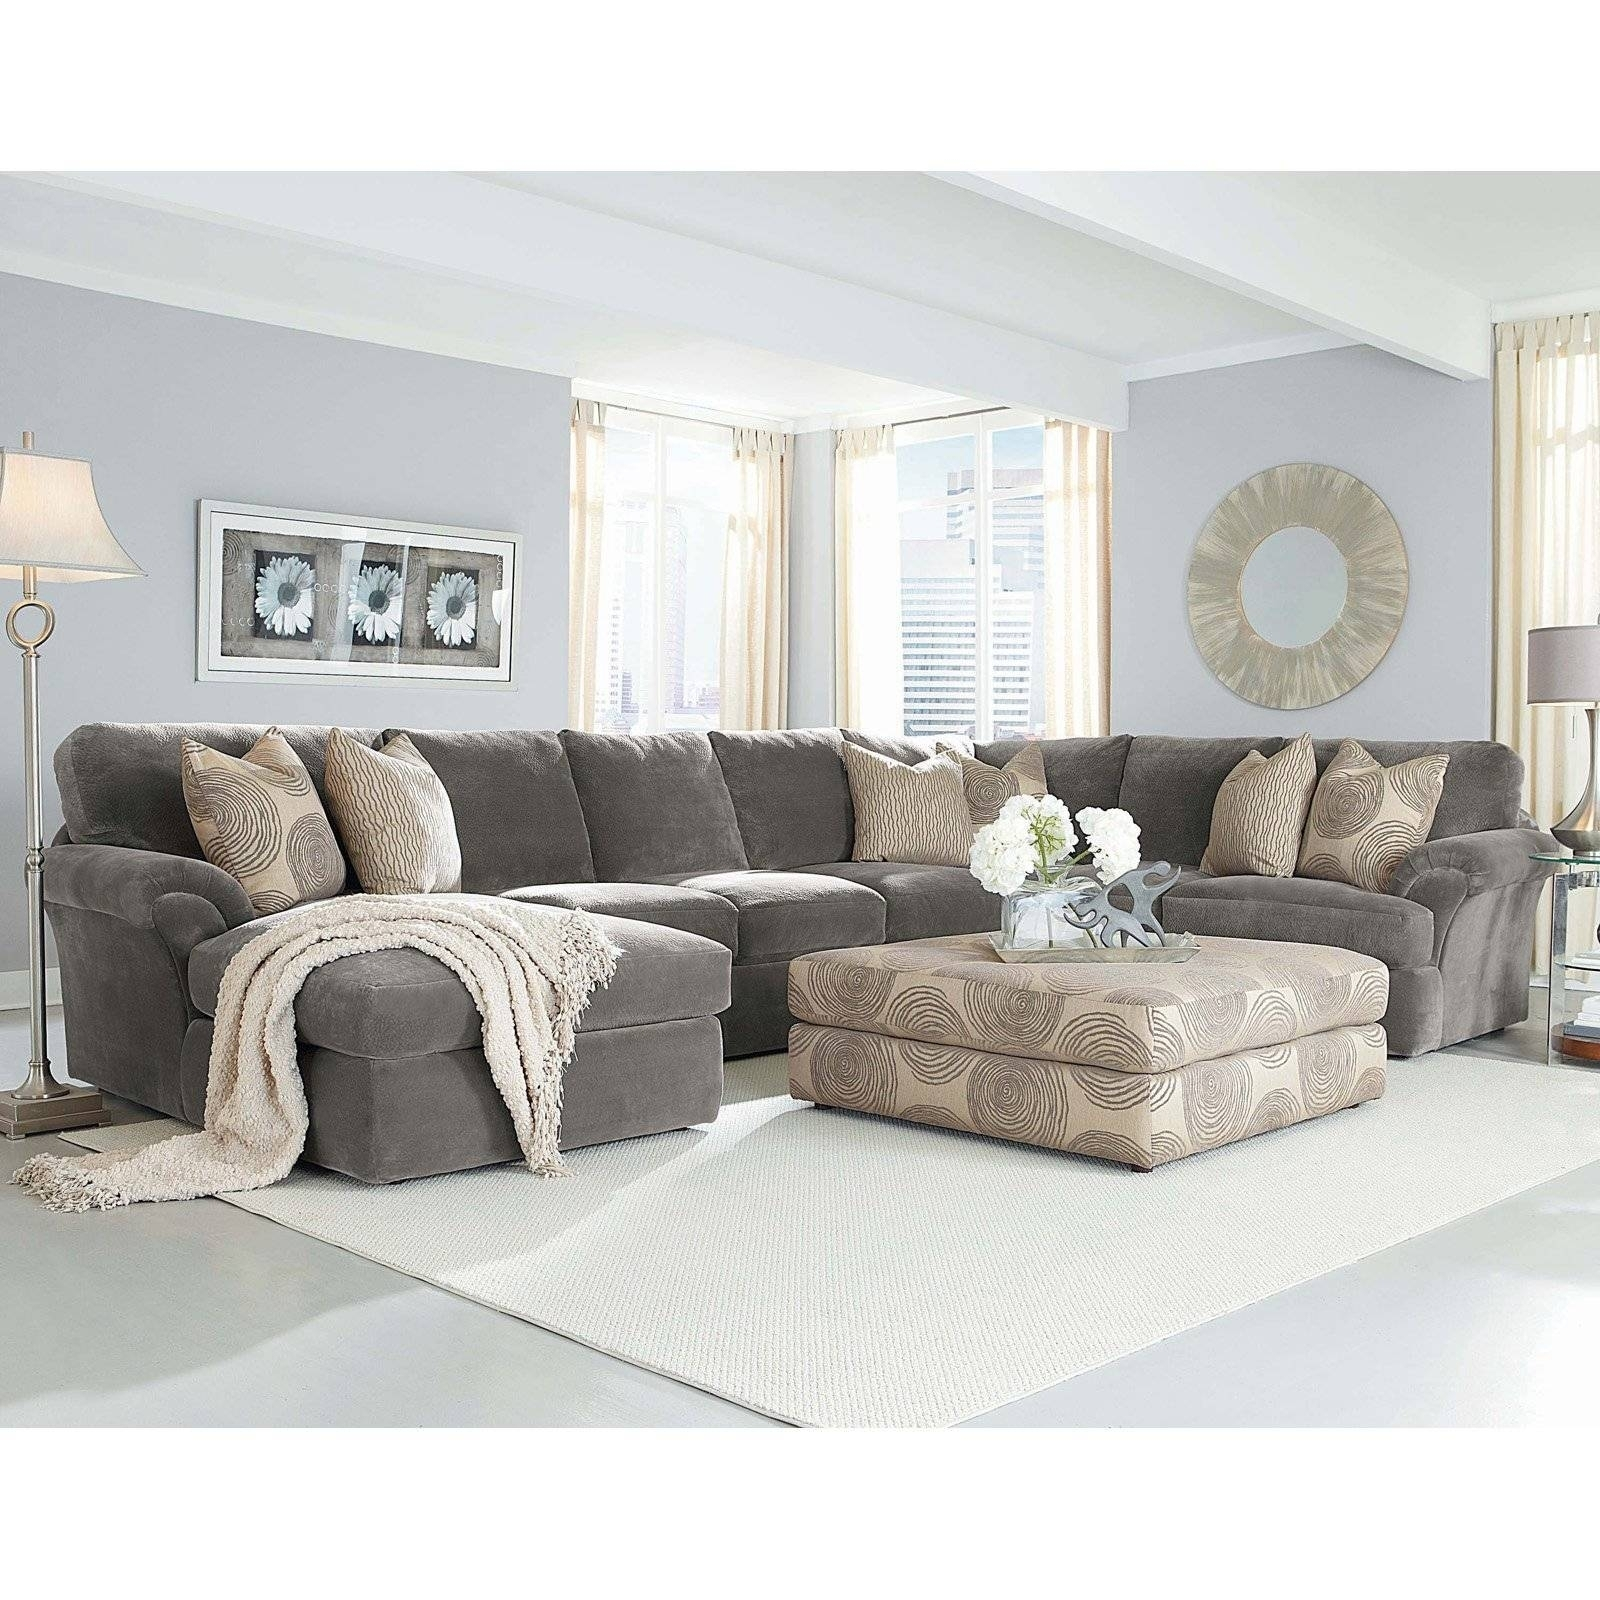 grey sectional couch ideas on foter